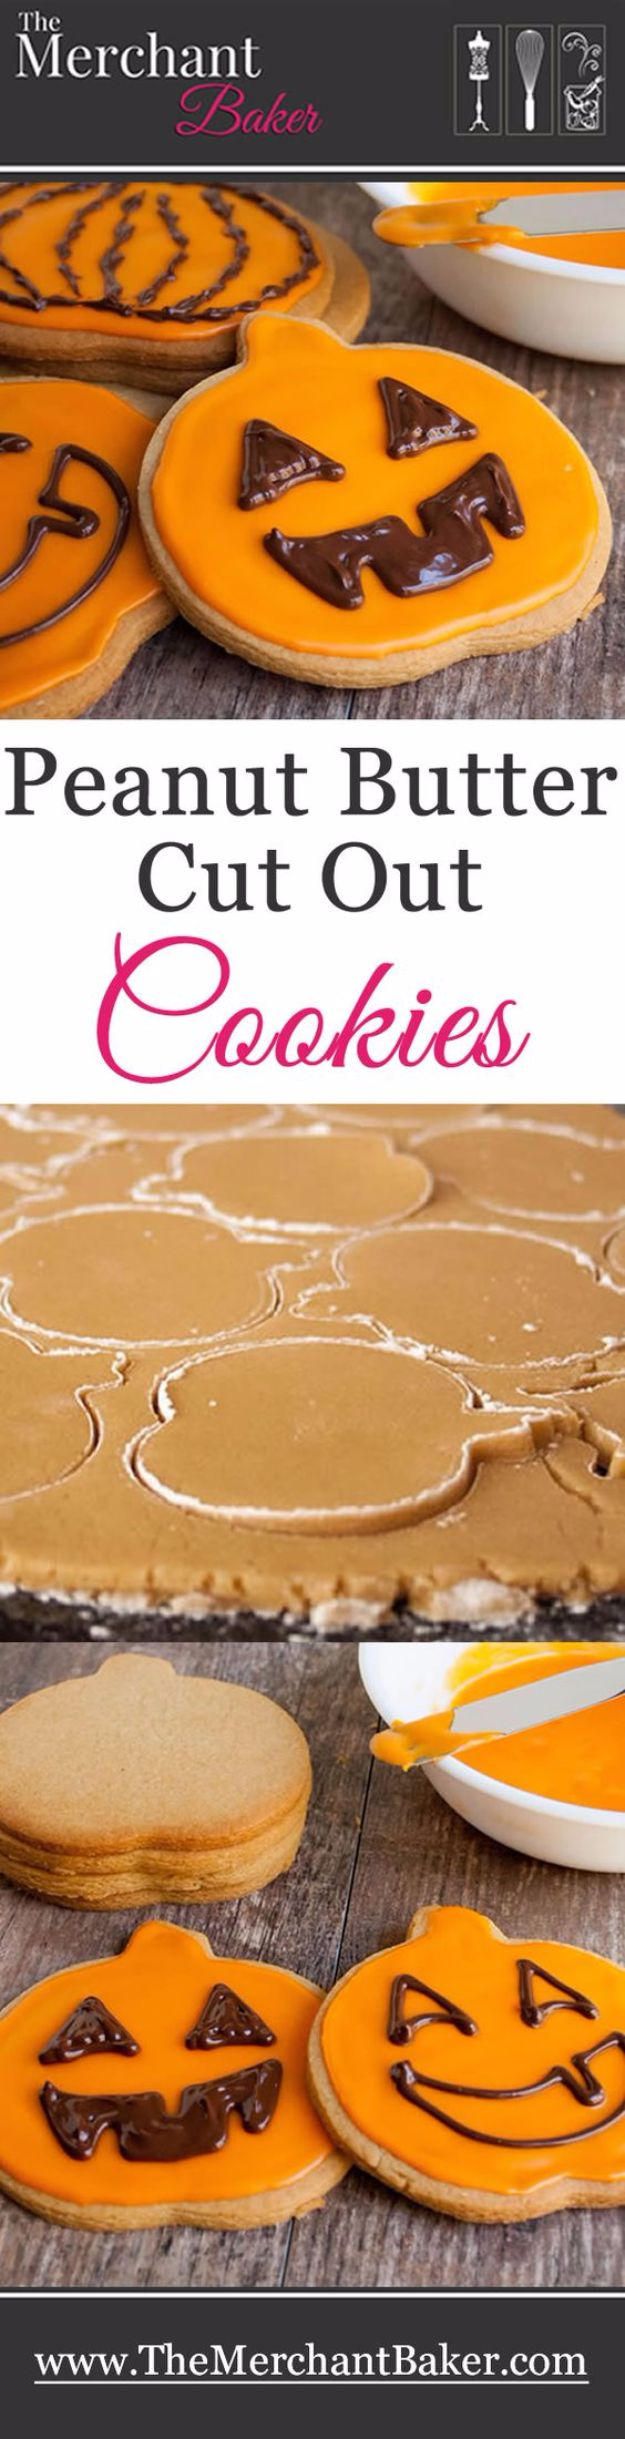 Cute Halloween Cookies - Peanut Butter Cut Out Cookies - Easy Recipes and Cookie Tutorials for Making Quick Halloween Treats - Spooky DIY Decorated Ghosts, Pumpkins, Bats, No Bake, Spiders and Spiderwebs, Tombstones and Healthy Options, Kids and Teens Cookies for School #halloween #halloweencookies